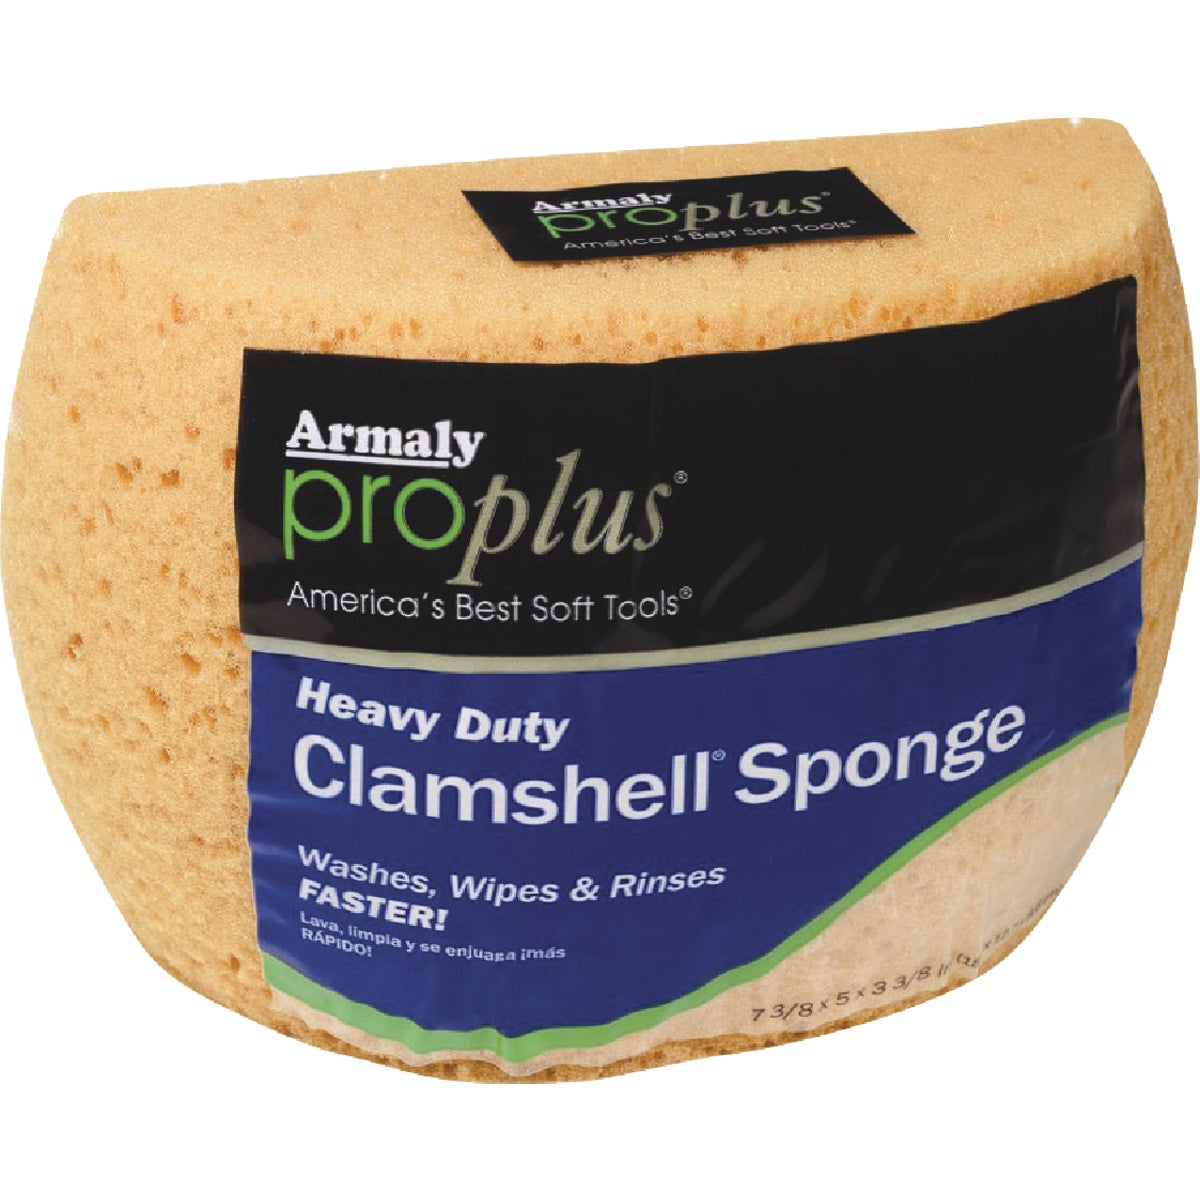 CLAMSHELL SPONGE - 00008 by Armaly Brands